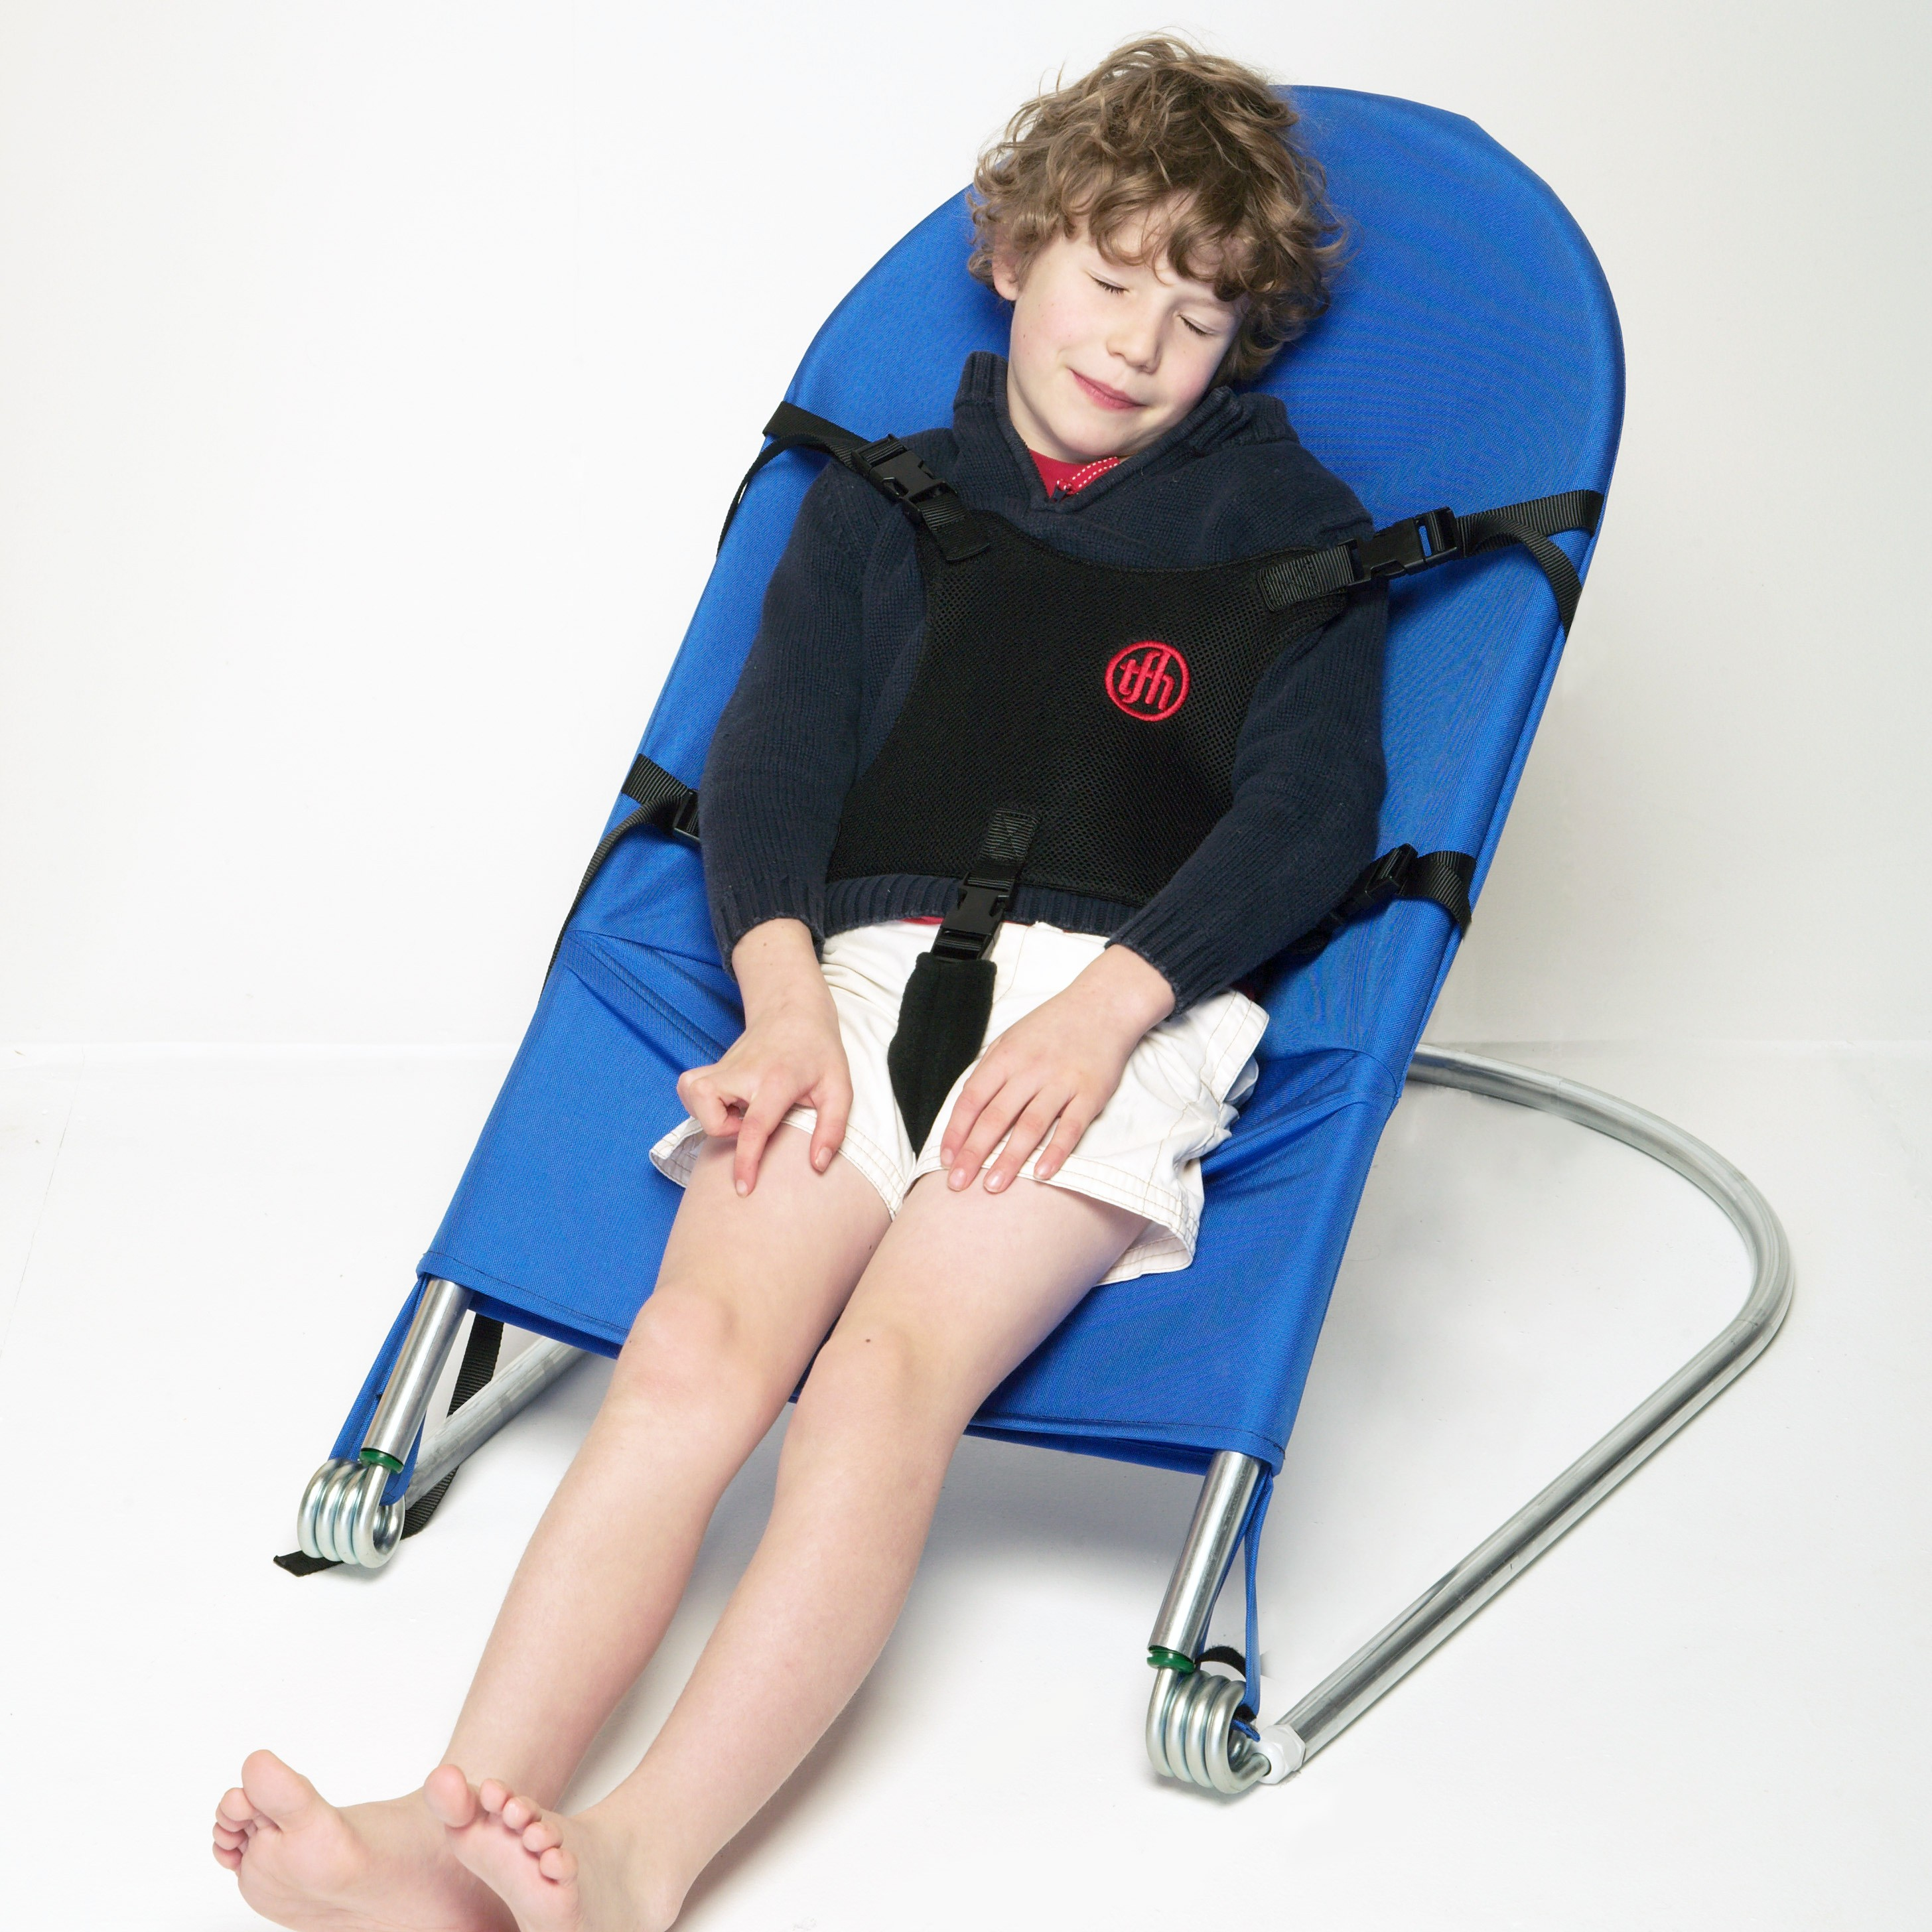 Large-Bouncing-Chair-For-Special-Needs-Children - Richmond House Social Care Services -2021